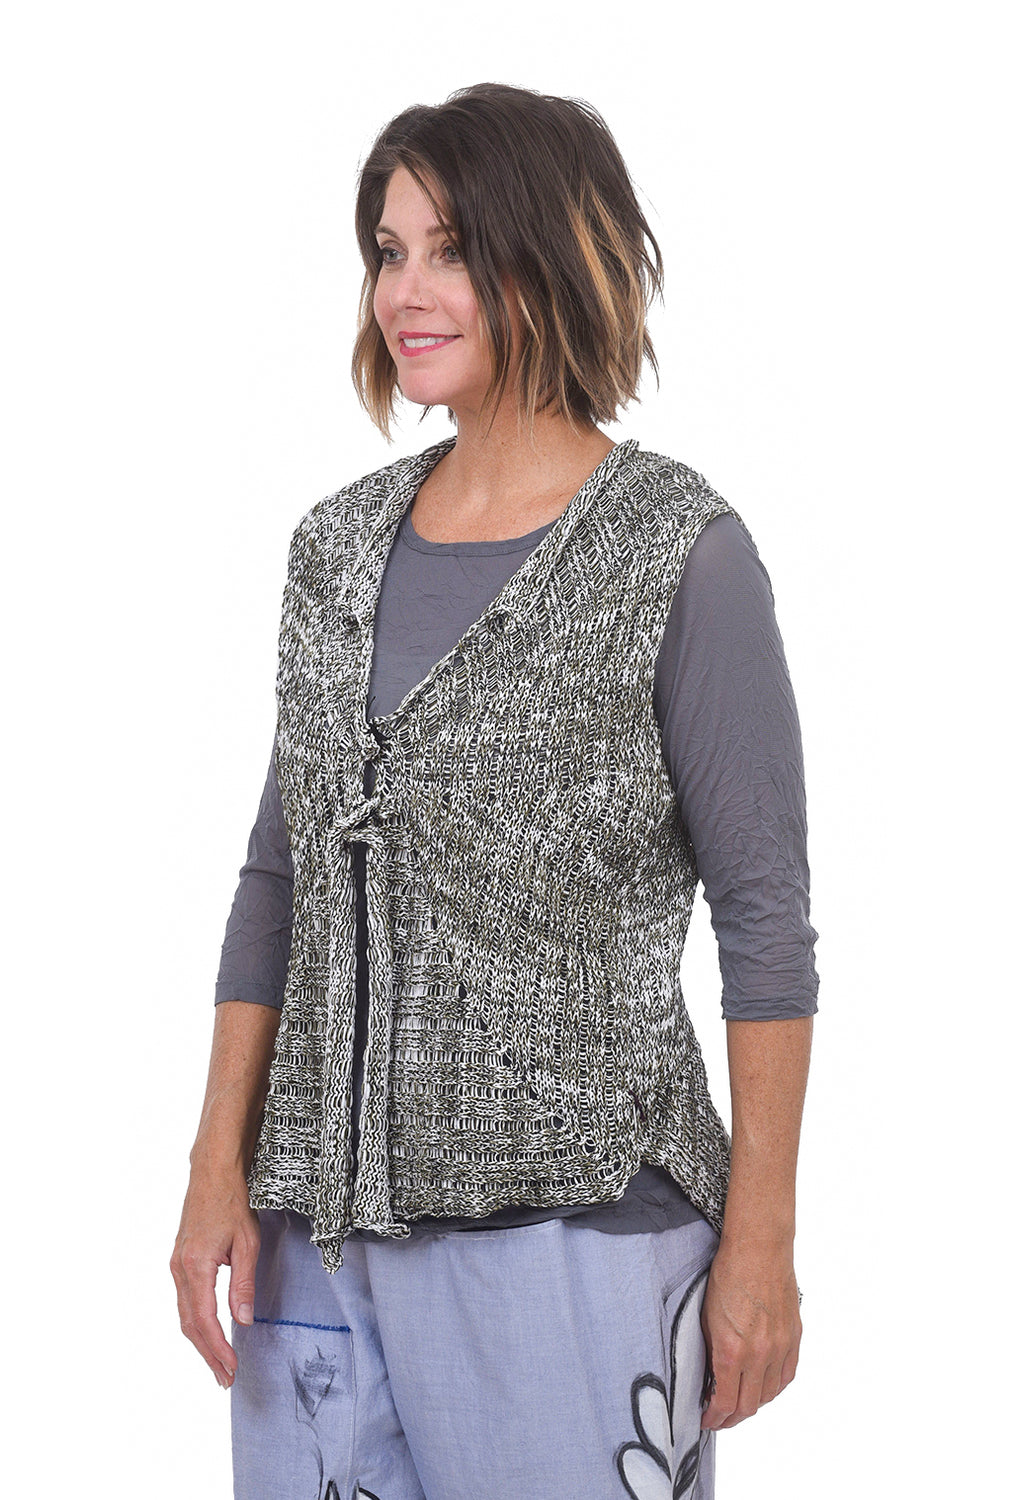 Skif International Octagon Sweater Vest, Magic One Size Magic